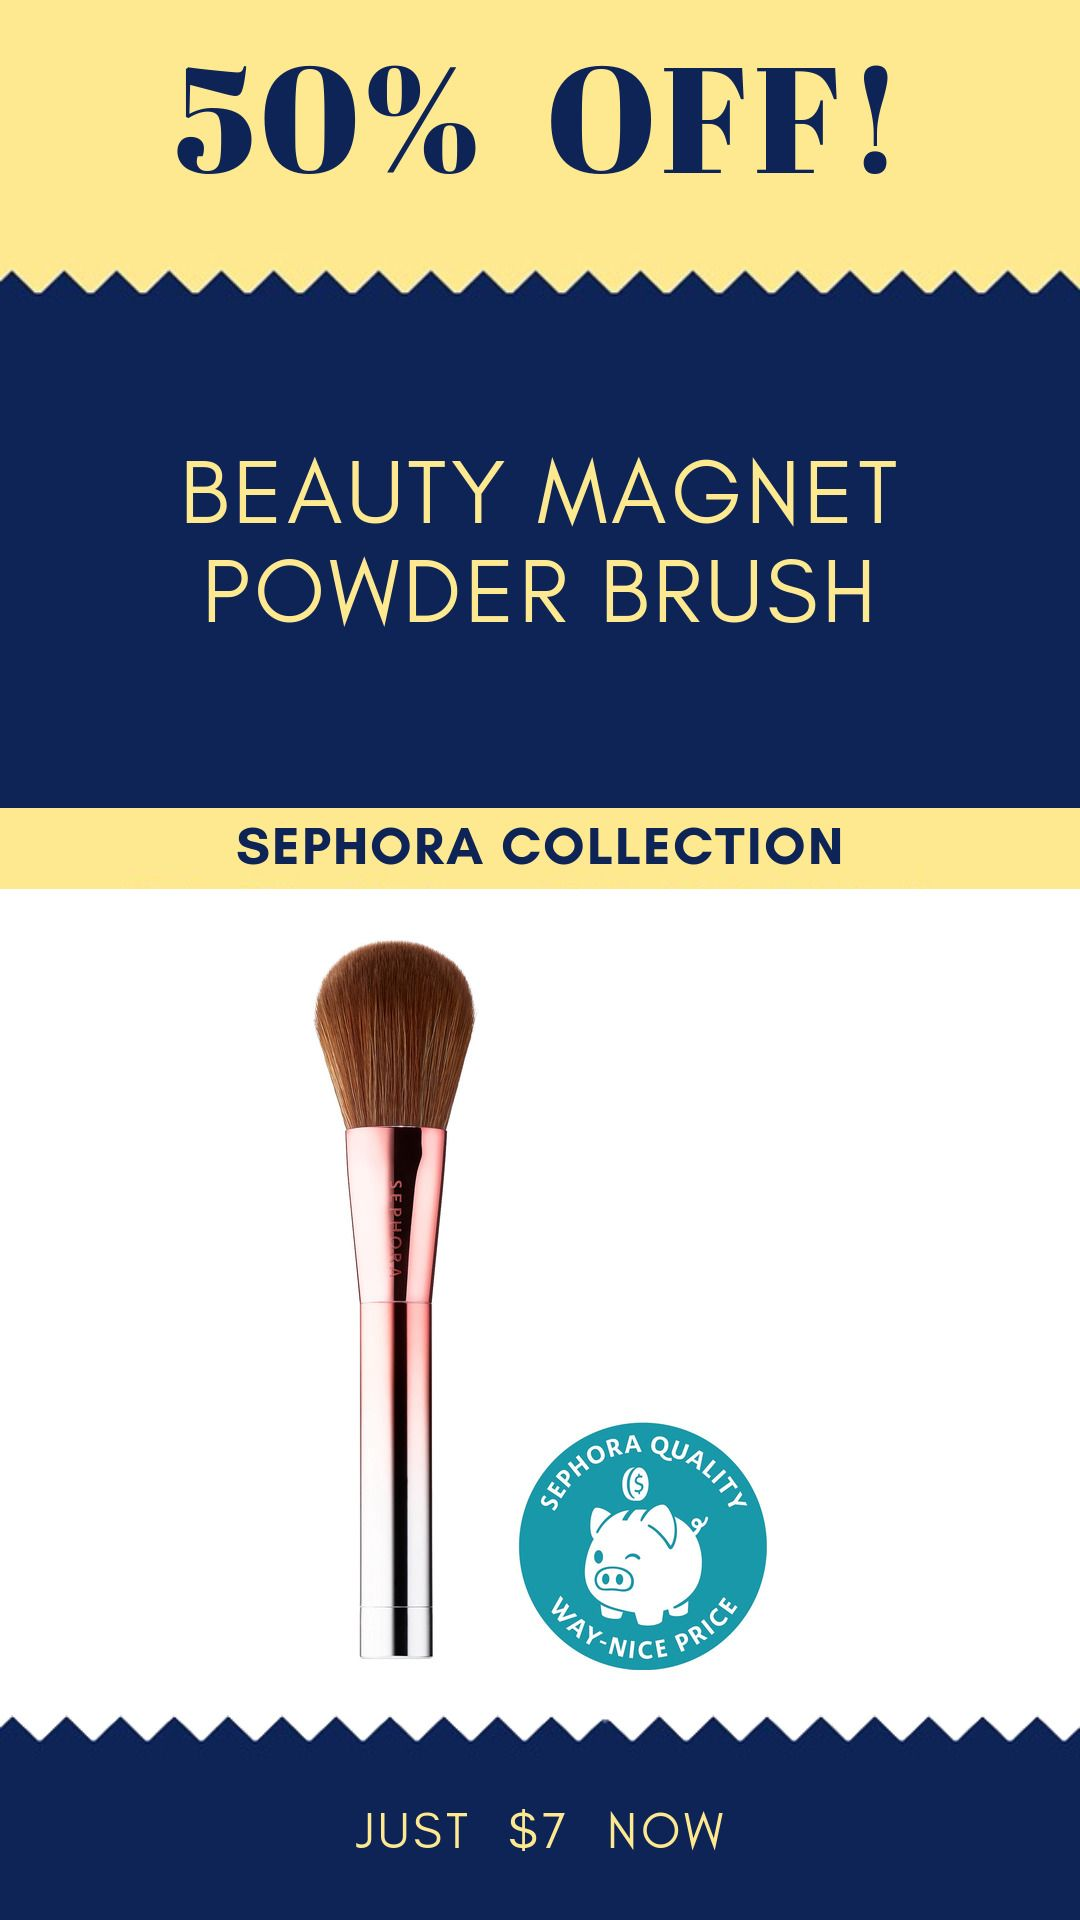 Beauty Magnet Powder Brush, 50% Off #deal